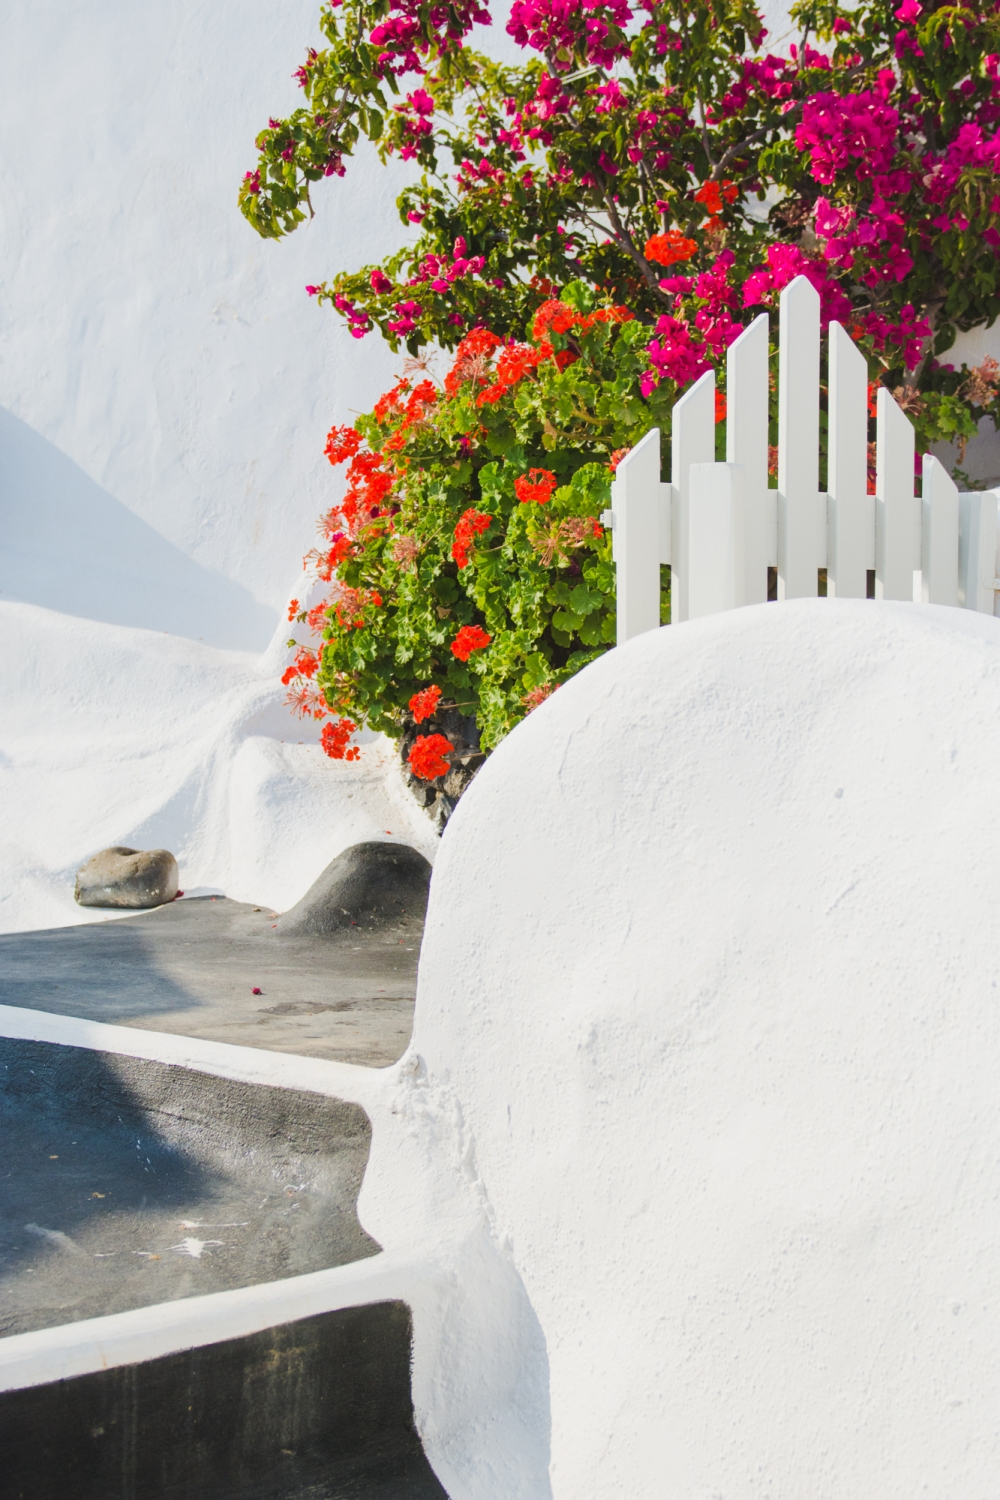 santorini-greece-traveling-romatic-tips-questions